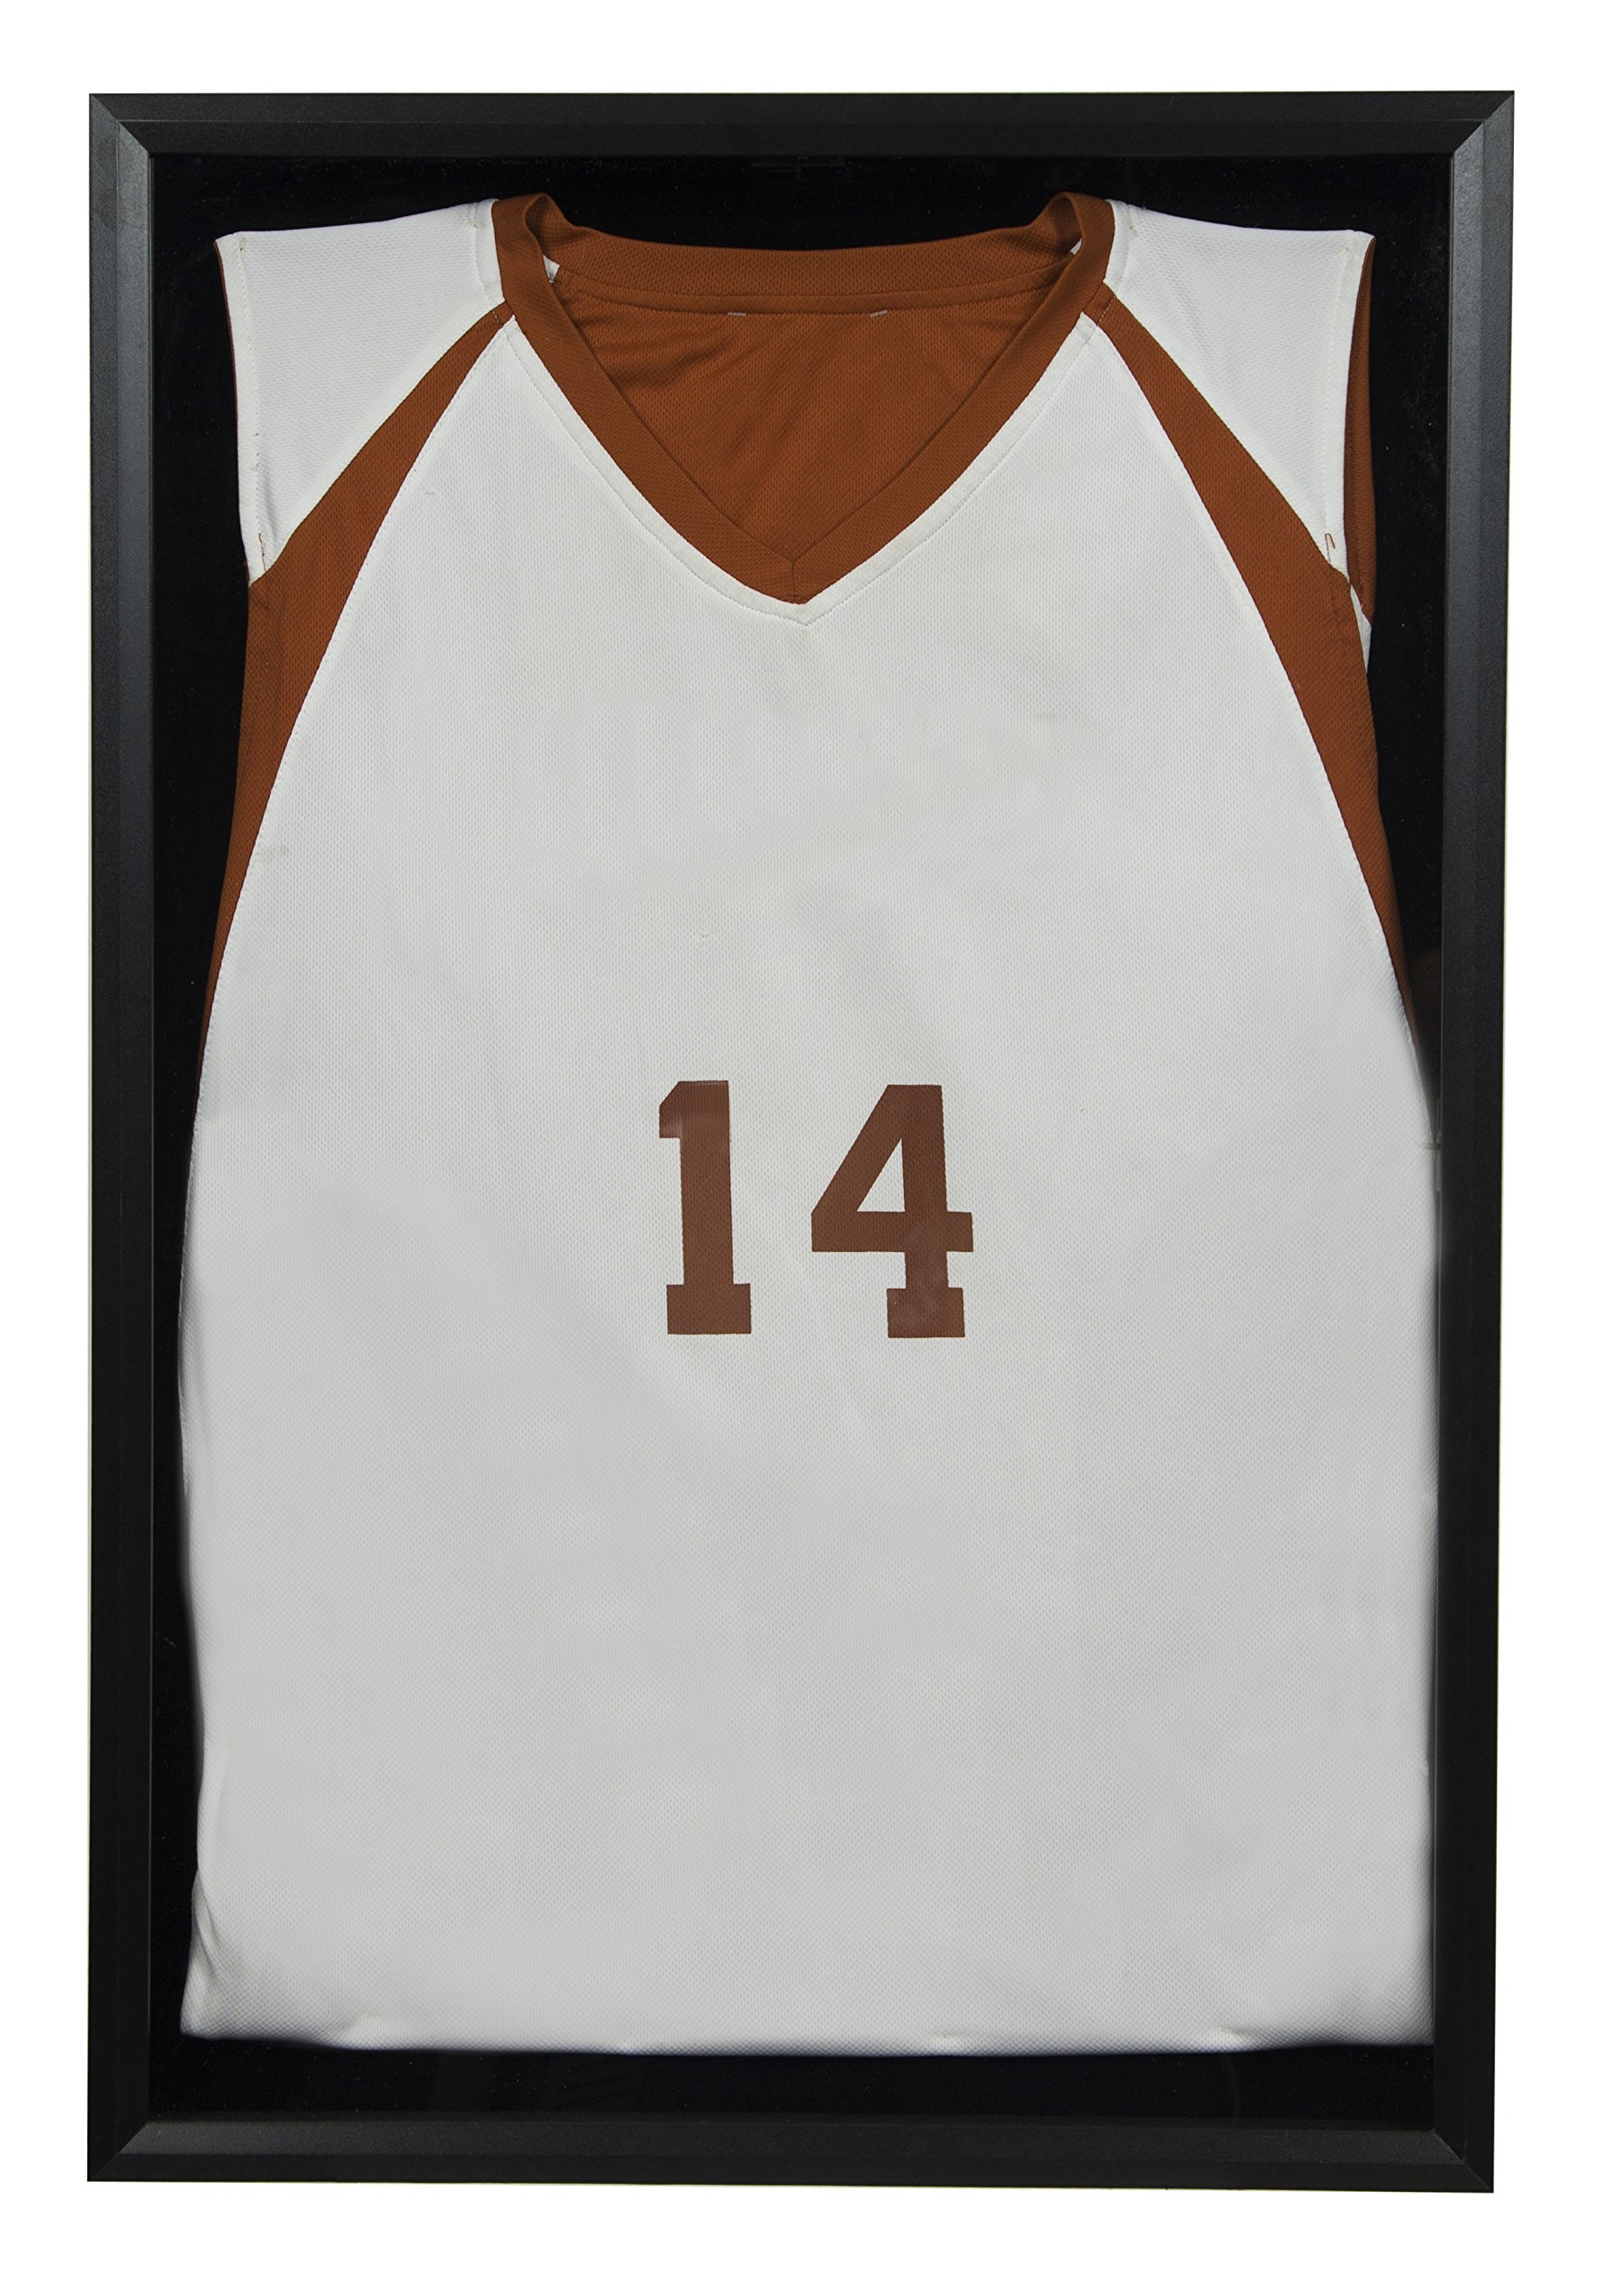 Snap Sports, 20 inches x 30 inches, Black Jersey Wall Display Case Shadow Box, by Snap